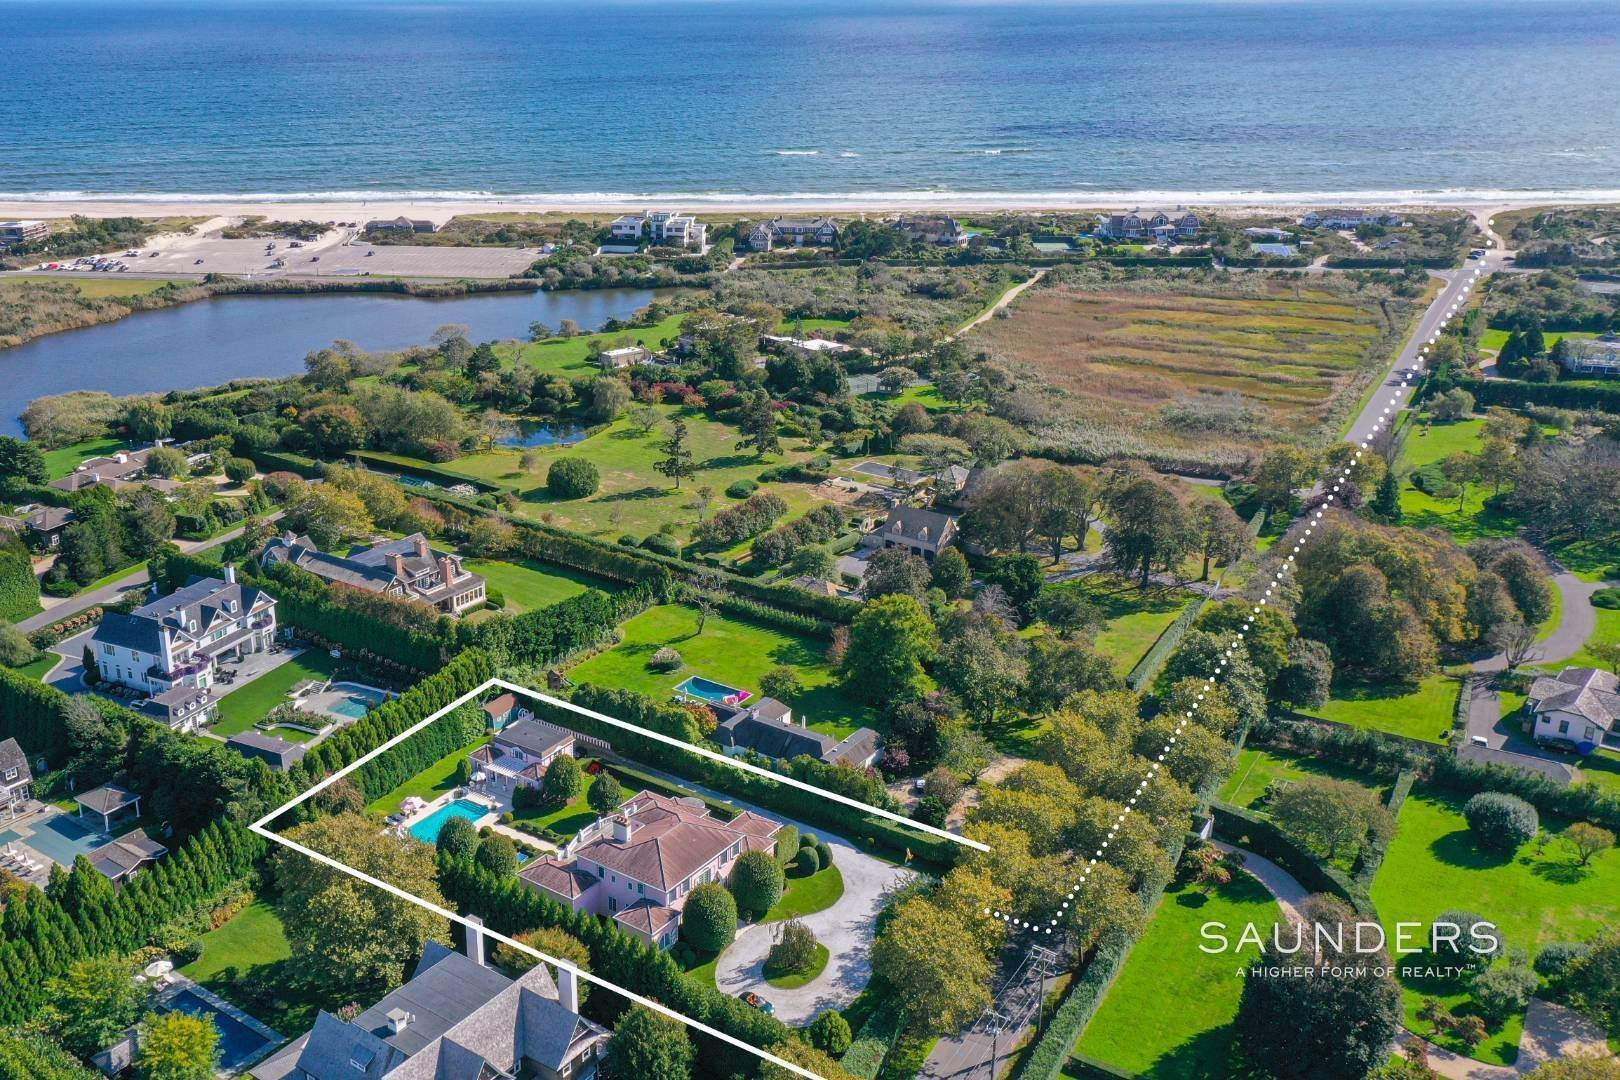 Single Family Homes for Sale at Elegant Estate Section Home, Moments To The Ocean 622 Halsey Neck Lane, Southampton, Southampton Town, NY 11968